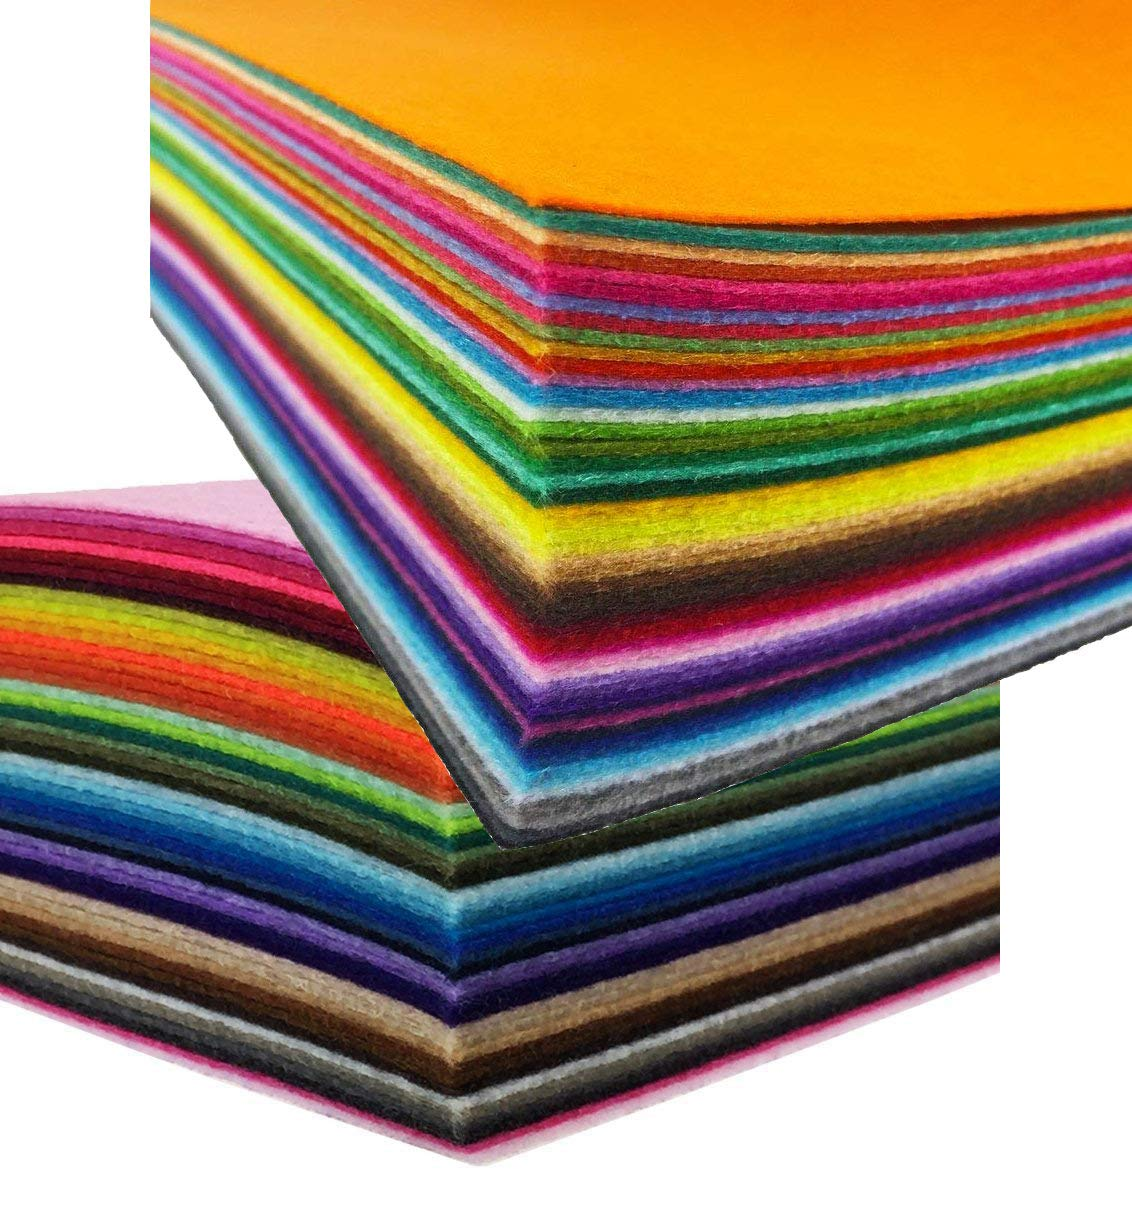 TBUY 40PCS Felt Sheets Nonwoven Fabric Assorted Color Patchwork Sewing DIY Craft 1mm Thick, 8x12 Inches (20x30CM)